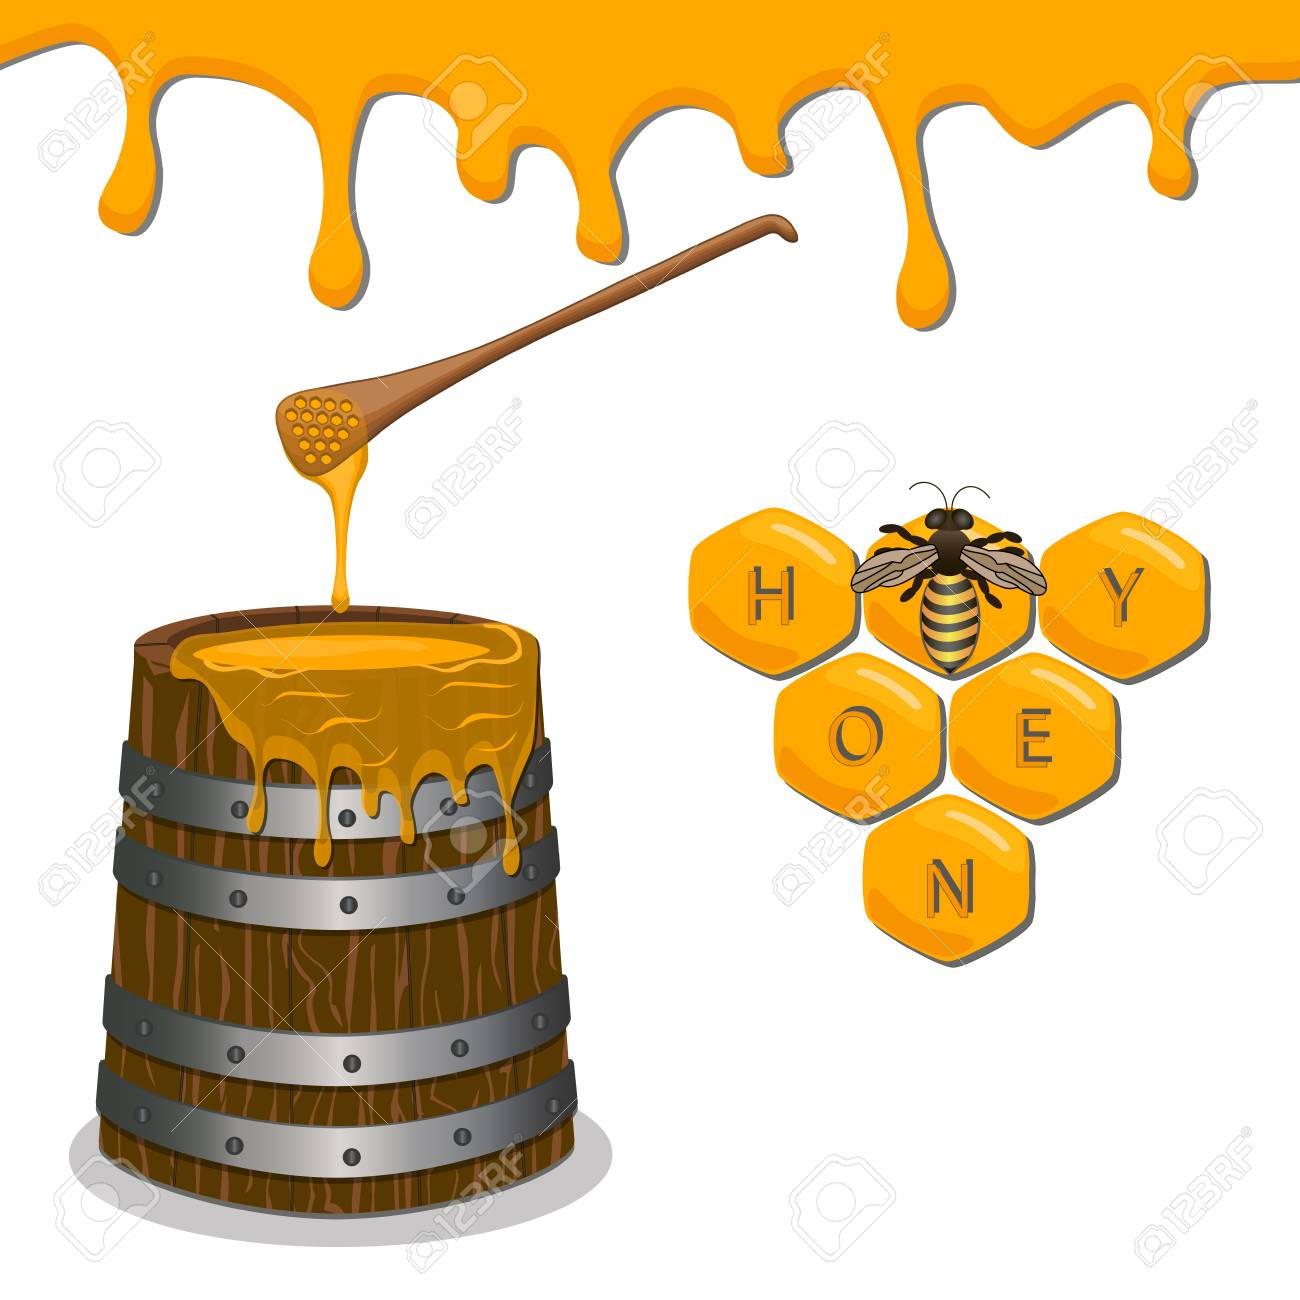 Abstract Vector Illustration Of Logo For The Bee Eating Honey In Honeycomb On Background